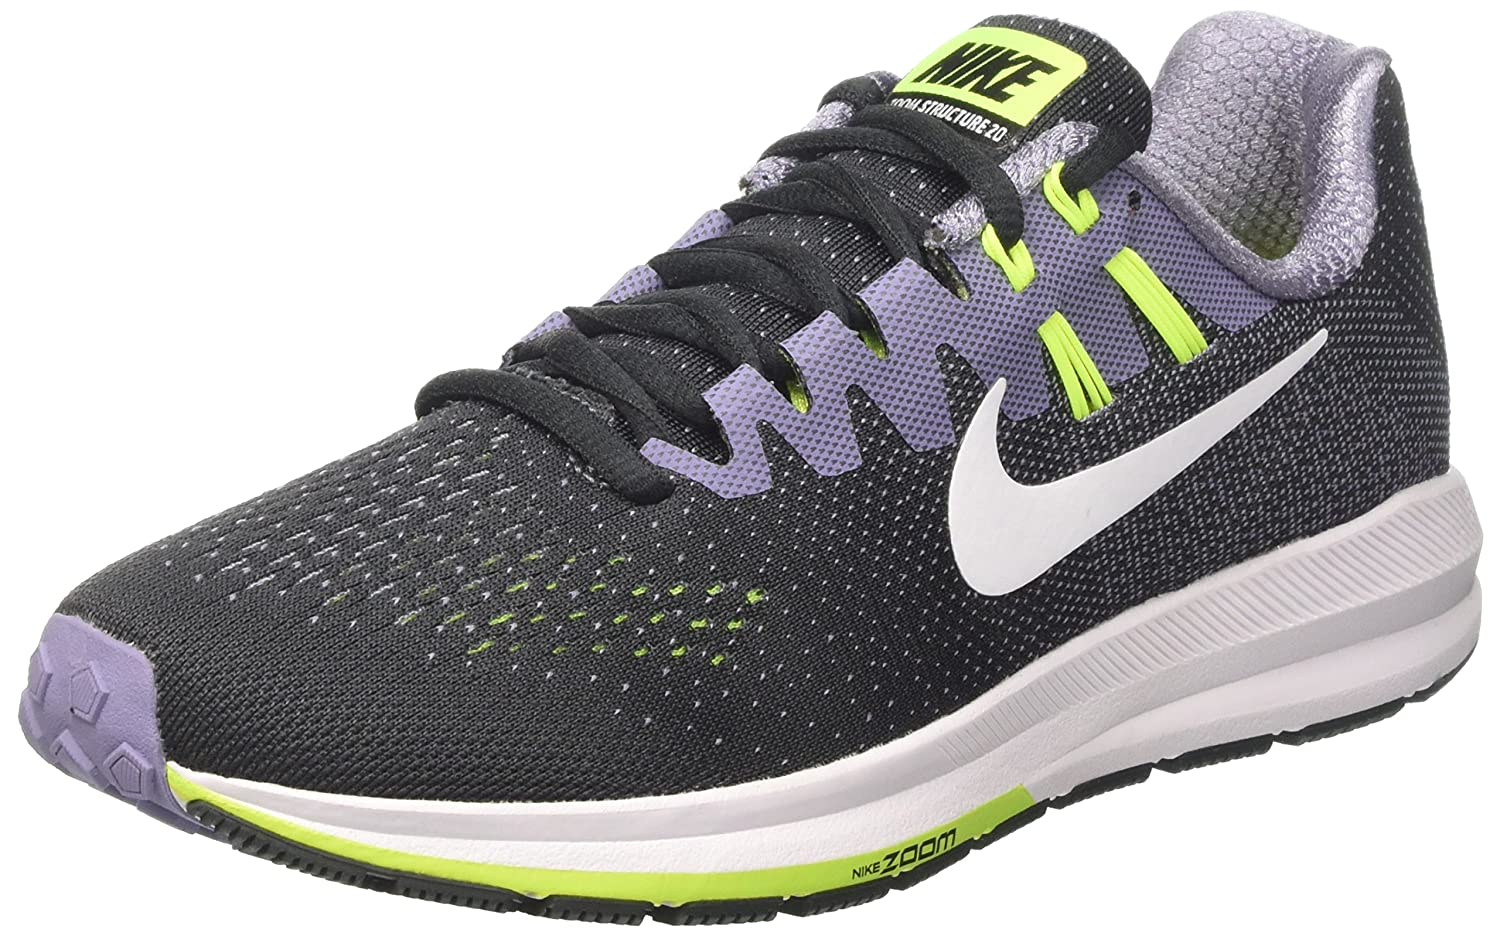 NIKE Womens Air Zoom Structure 20 Lightweight Fitness Running Shoes B06XSFBYQF 6.5 B(M) US|Anthracite